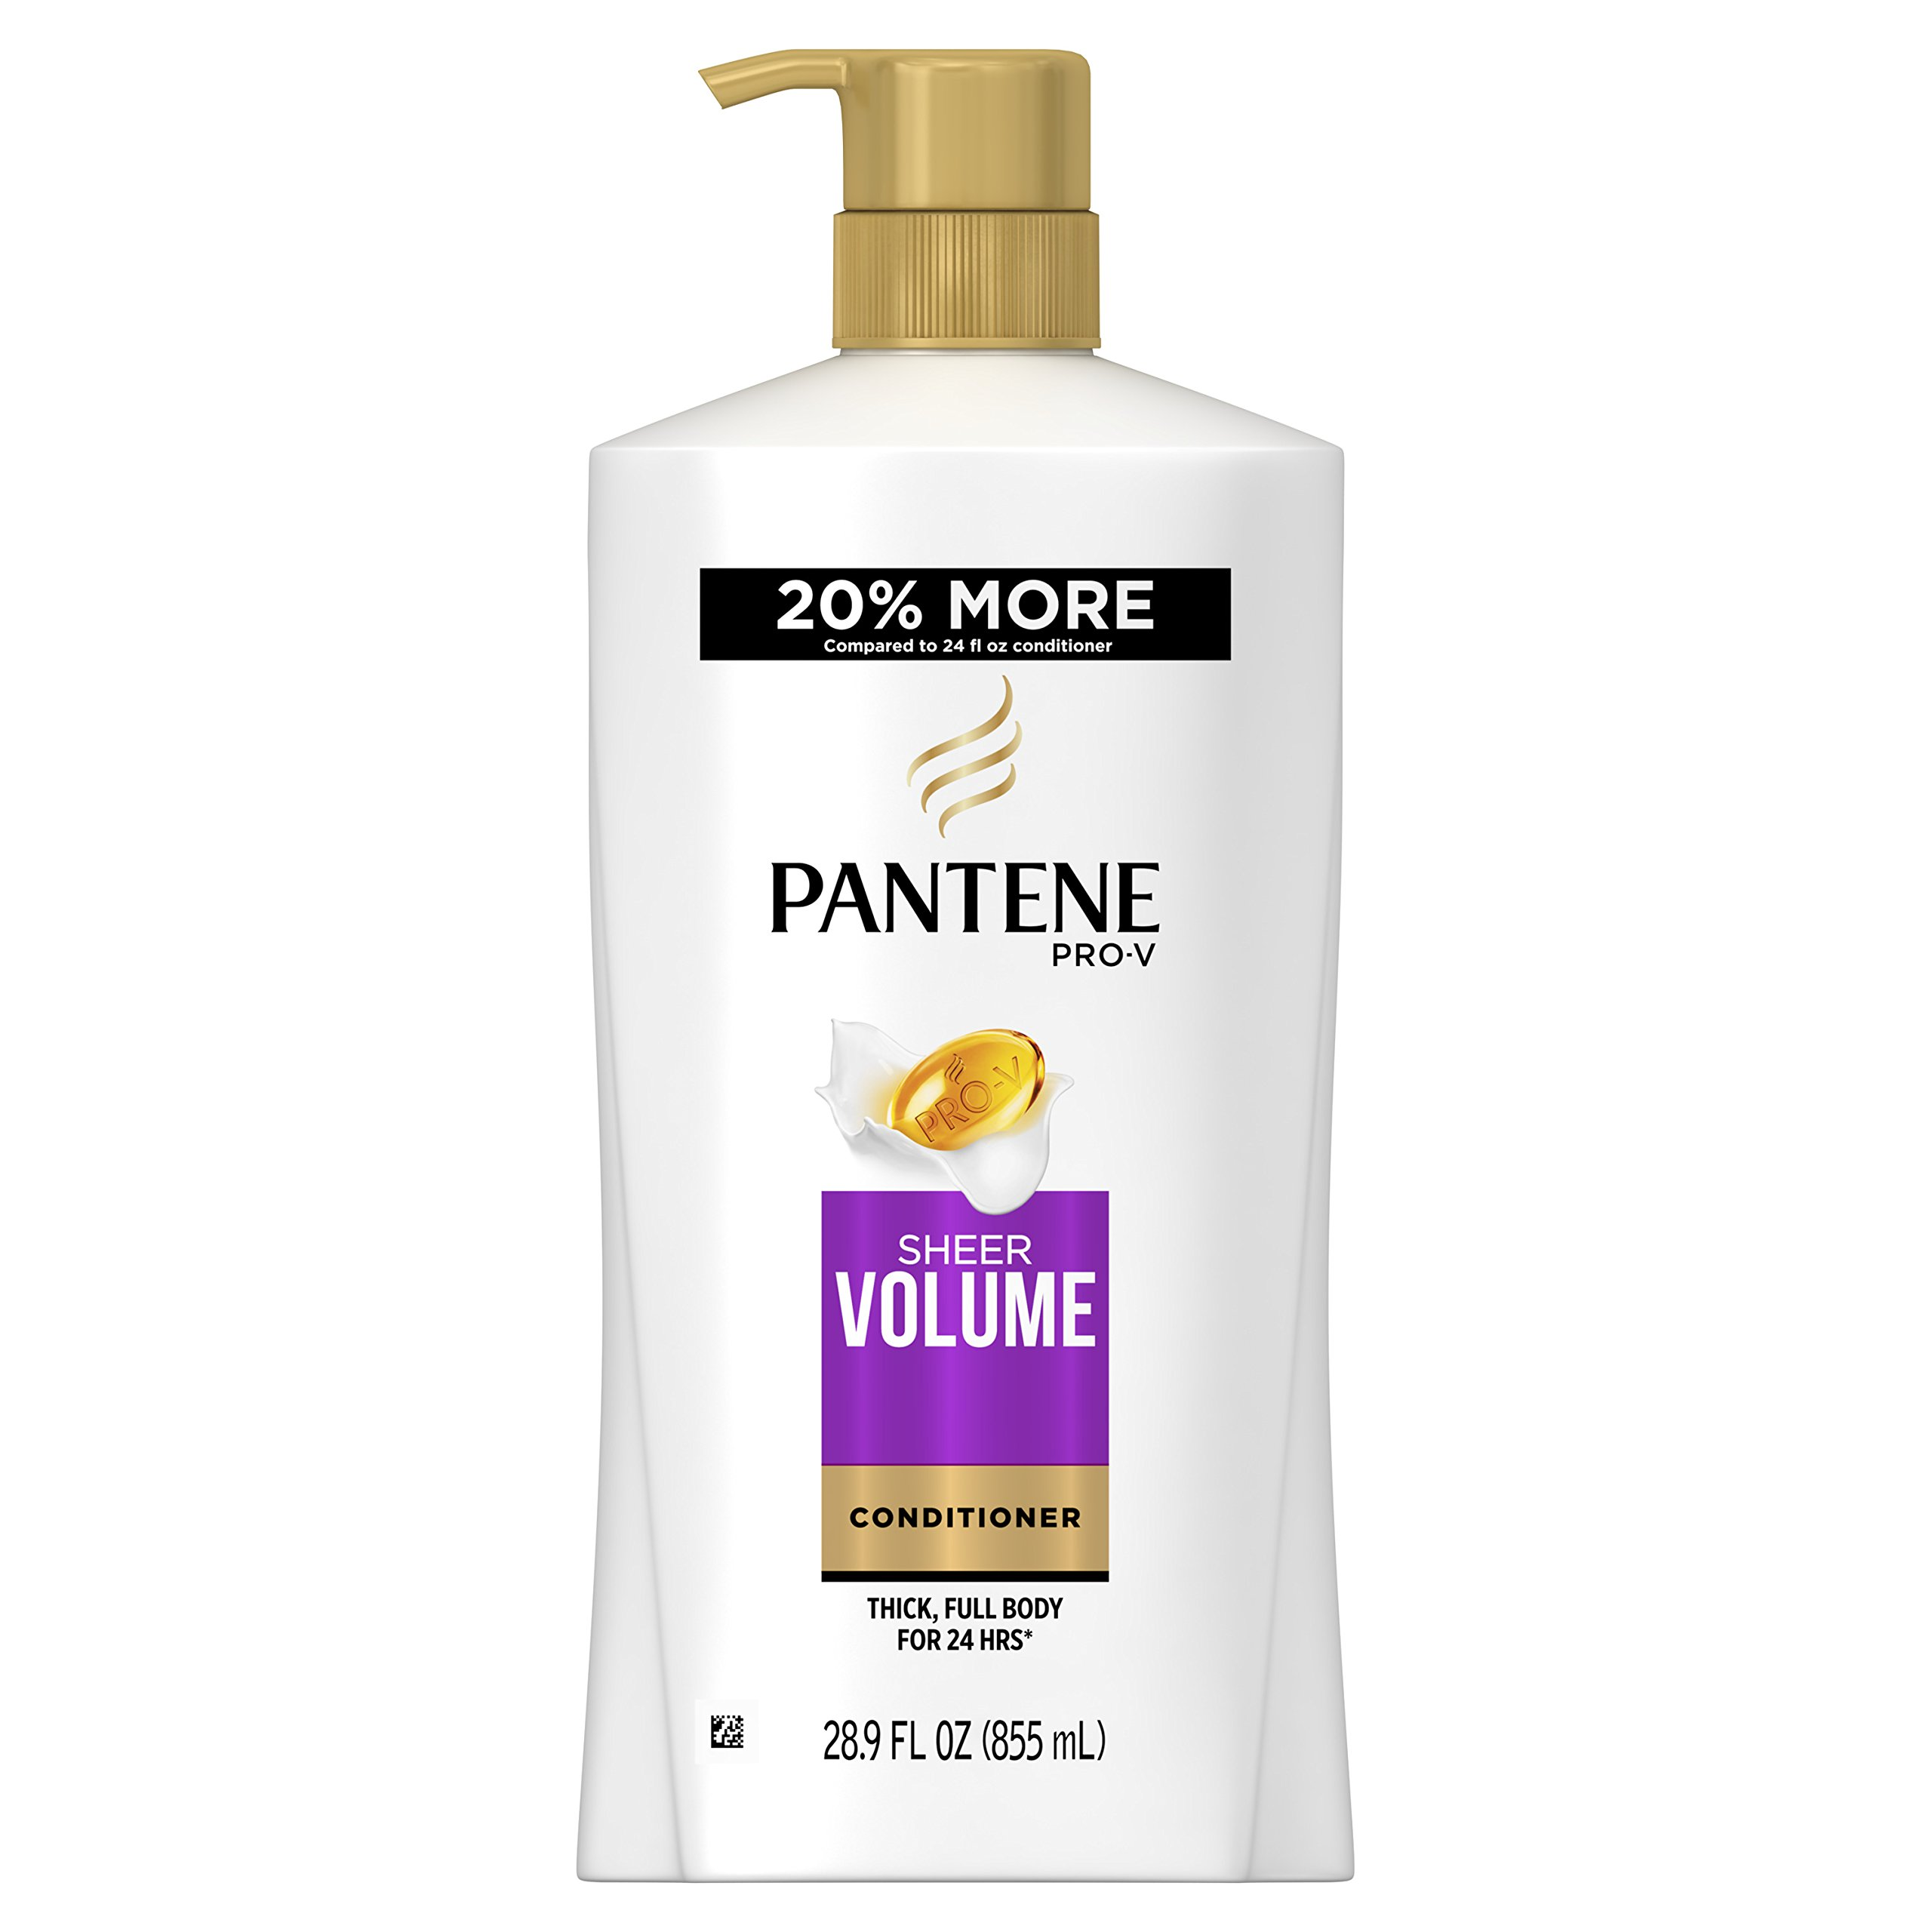 Pantene Pro-V Sheer Volume Conditioner, 28.9 Fluid Ounce (Pack of 4) (Packaging May Vary)